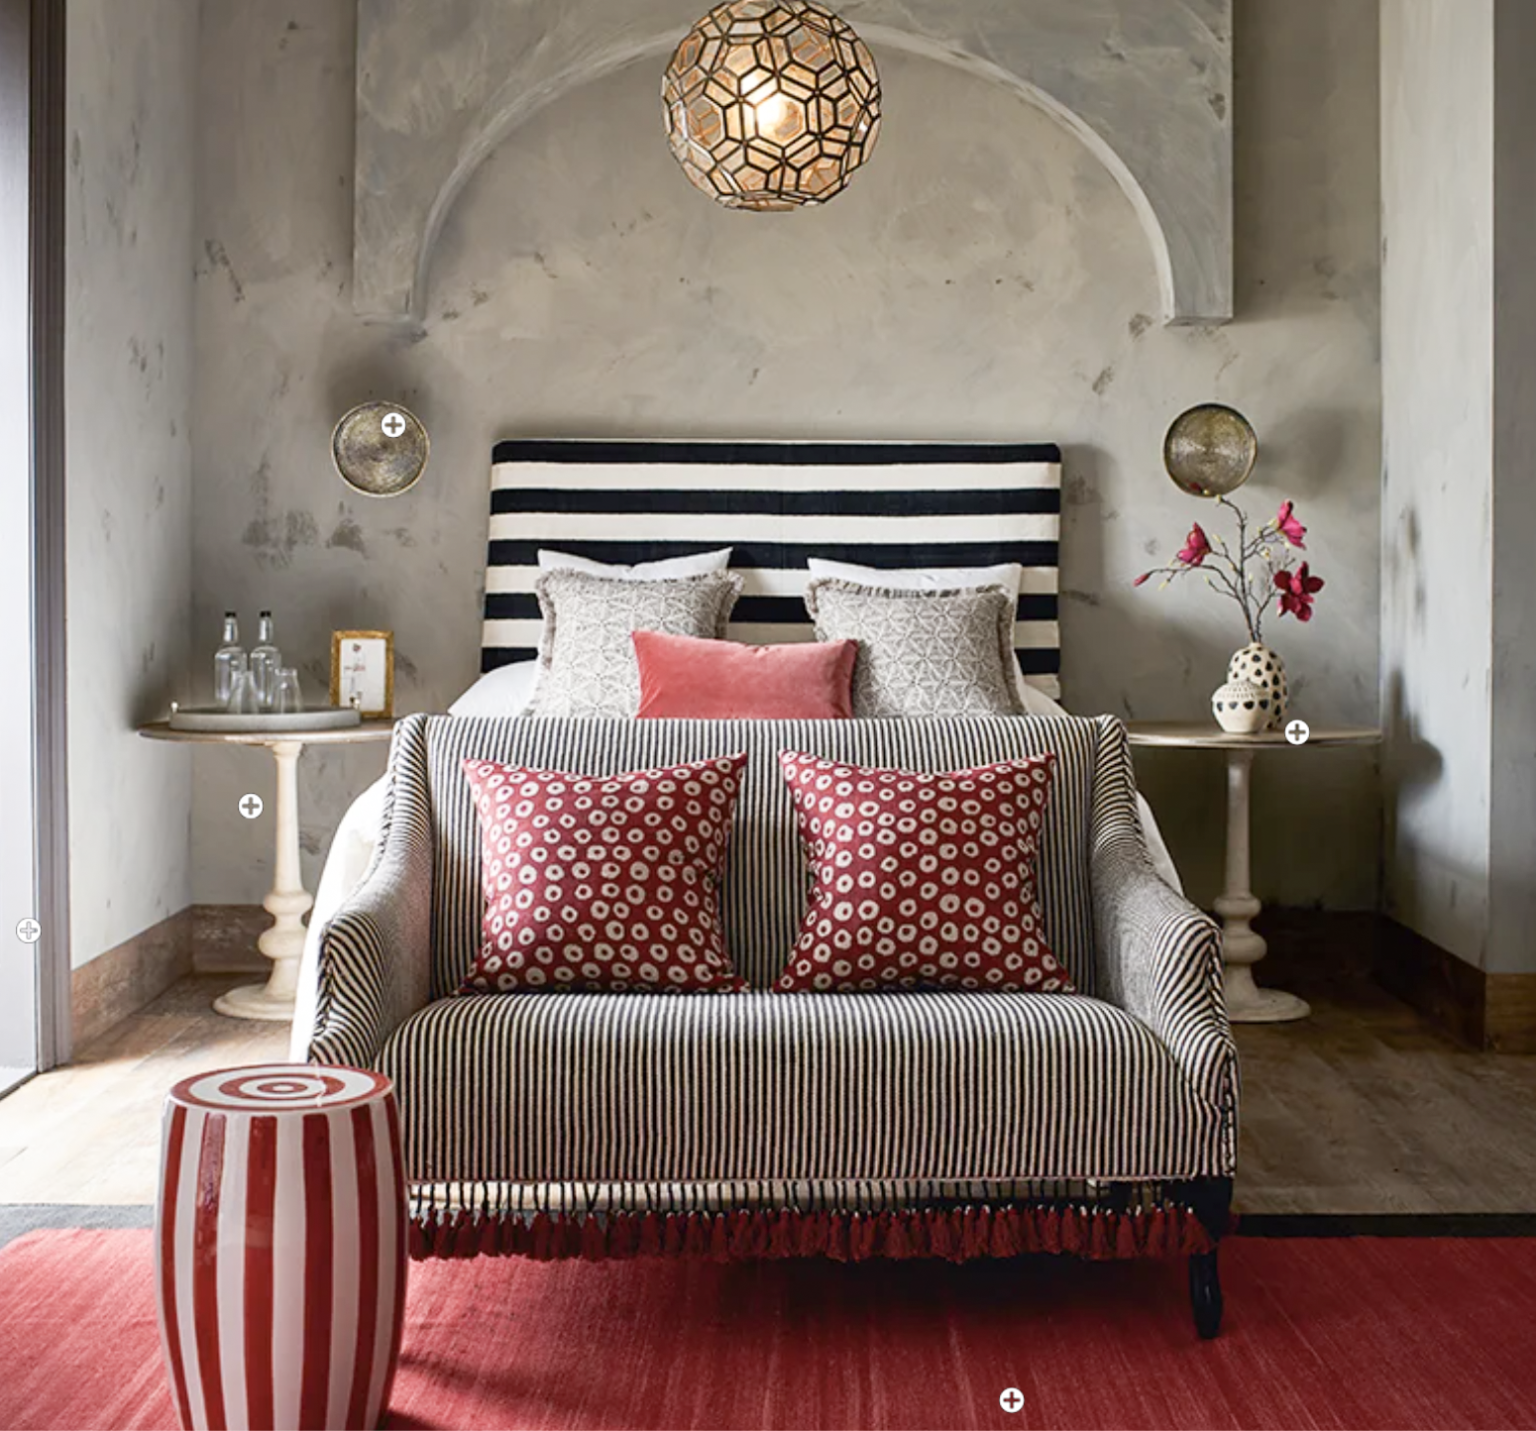 oka red and black bedroom on cindy hattersley's blog